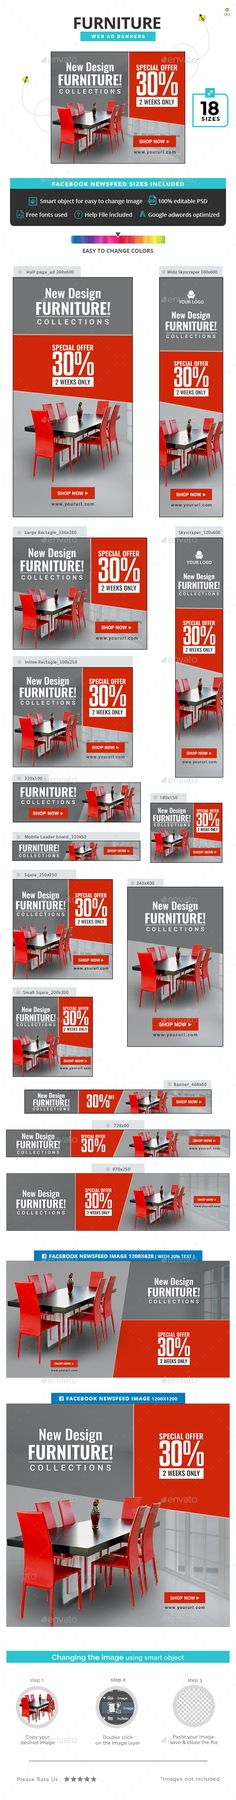 Furniture Banners - #Banners & Ads #Web Elements Download here: https://graphicriver.net/item/furniture-banners/20326470?ref=alena994